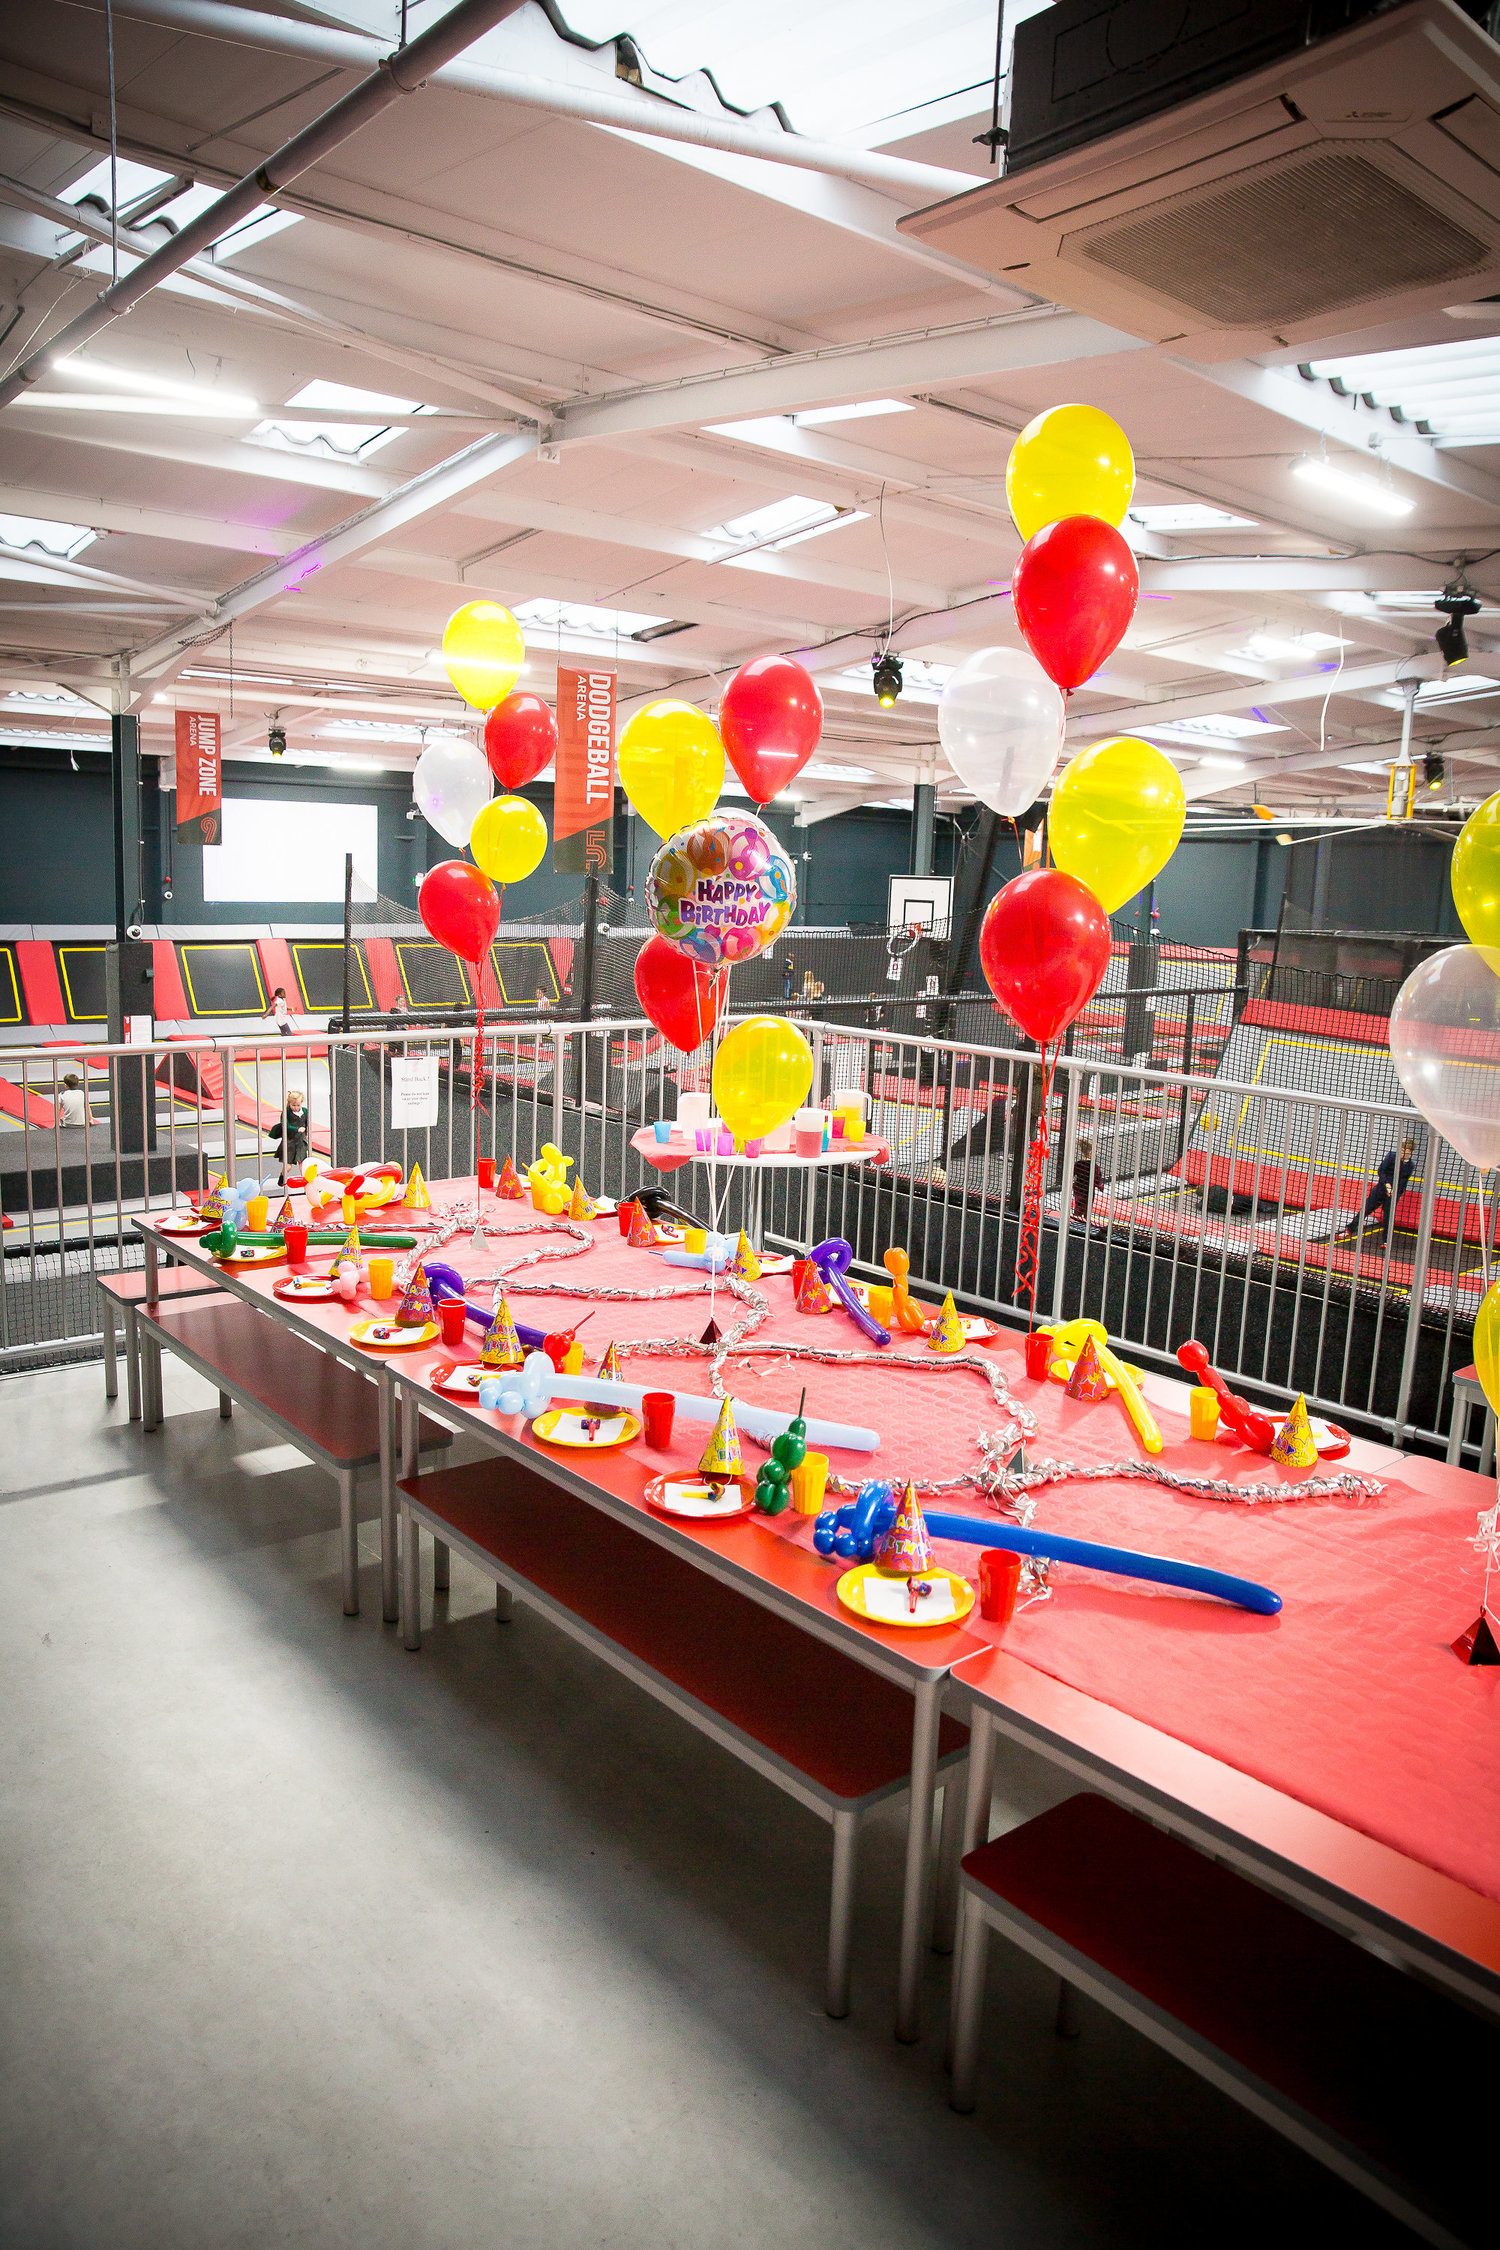 All Setup For A Birthday Party At Our Essex Trampoline Park